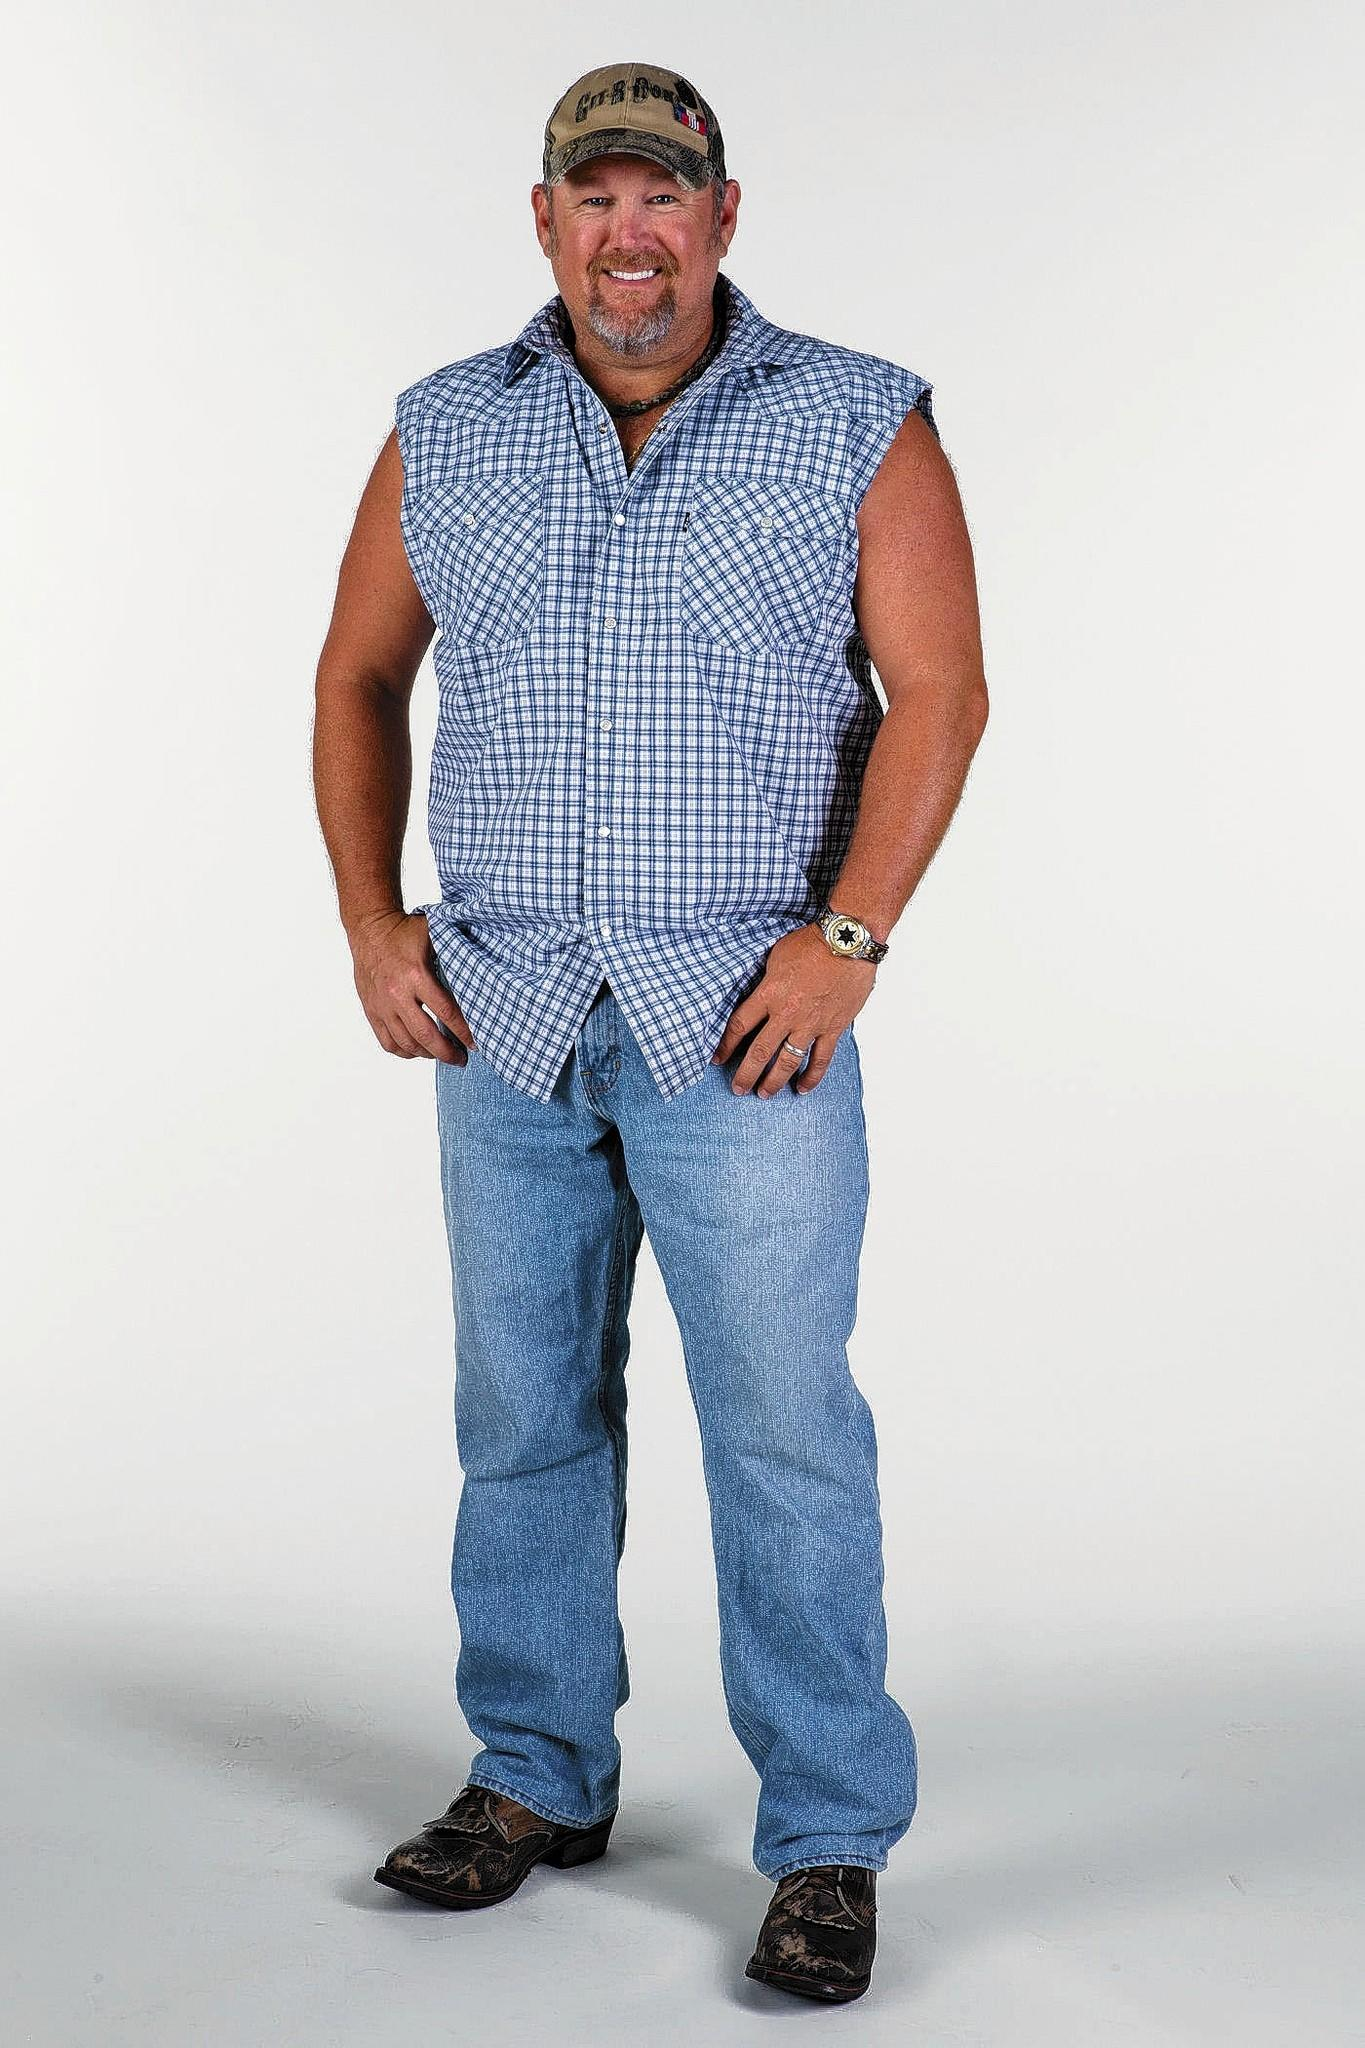 Larry the Cable Guy will offer up his blue collar humor along with some holiday jokes Dec. 28 at Sands Bethlehem Event Center.